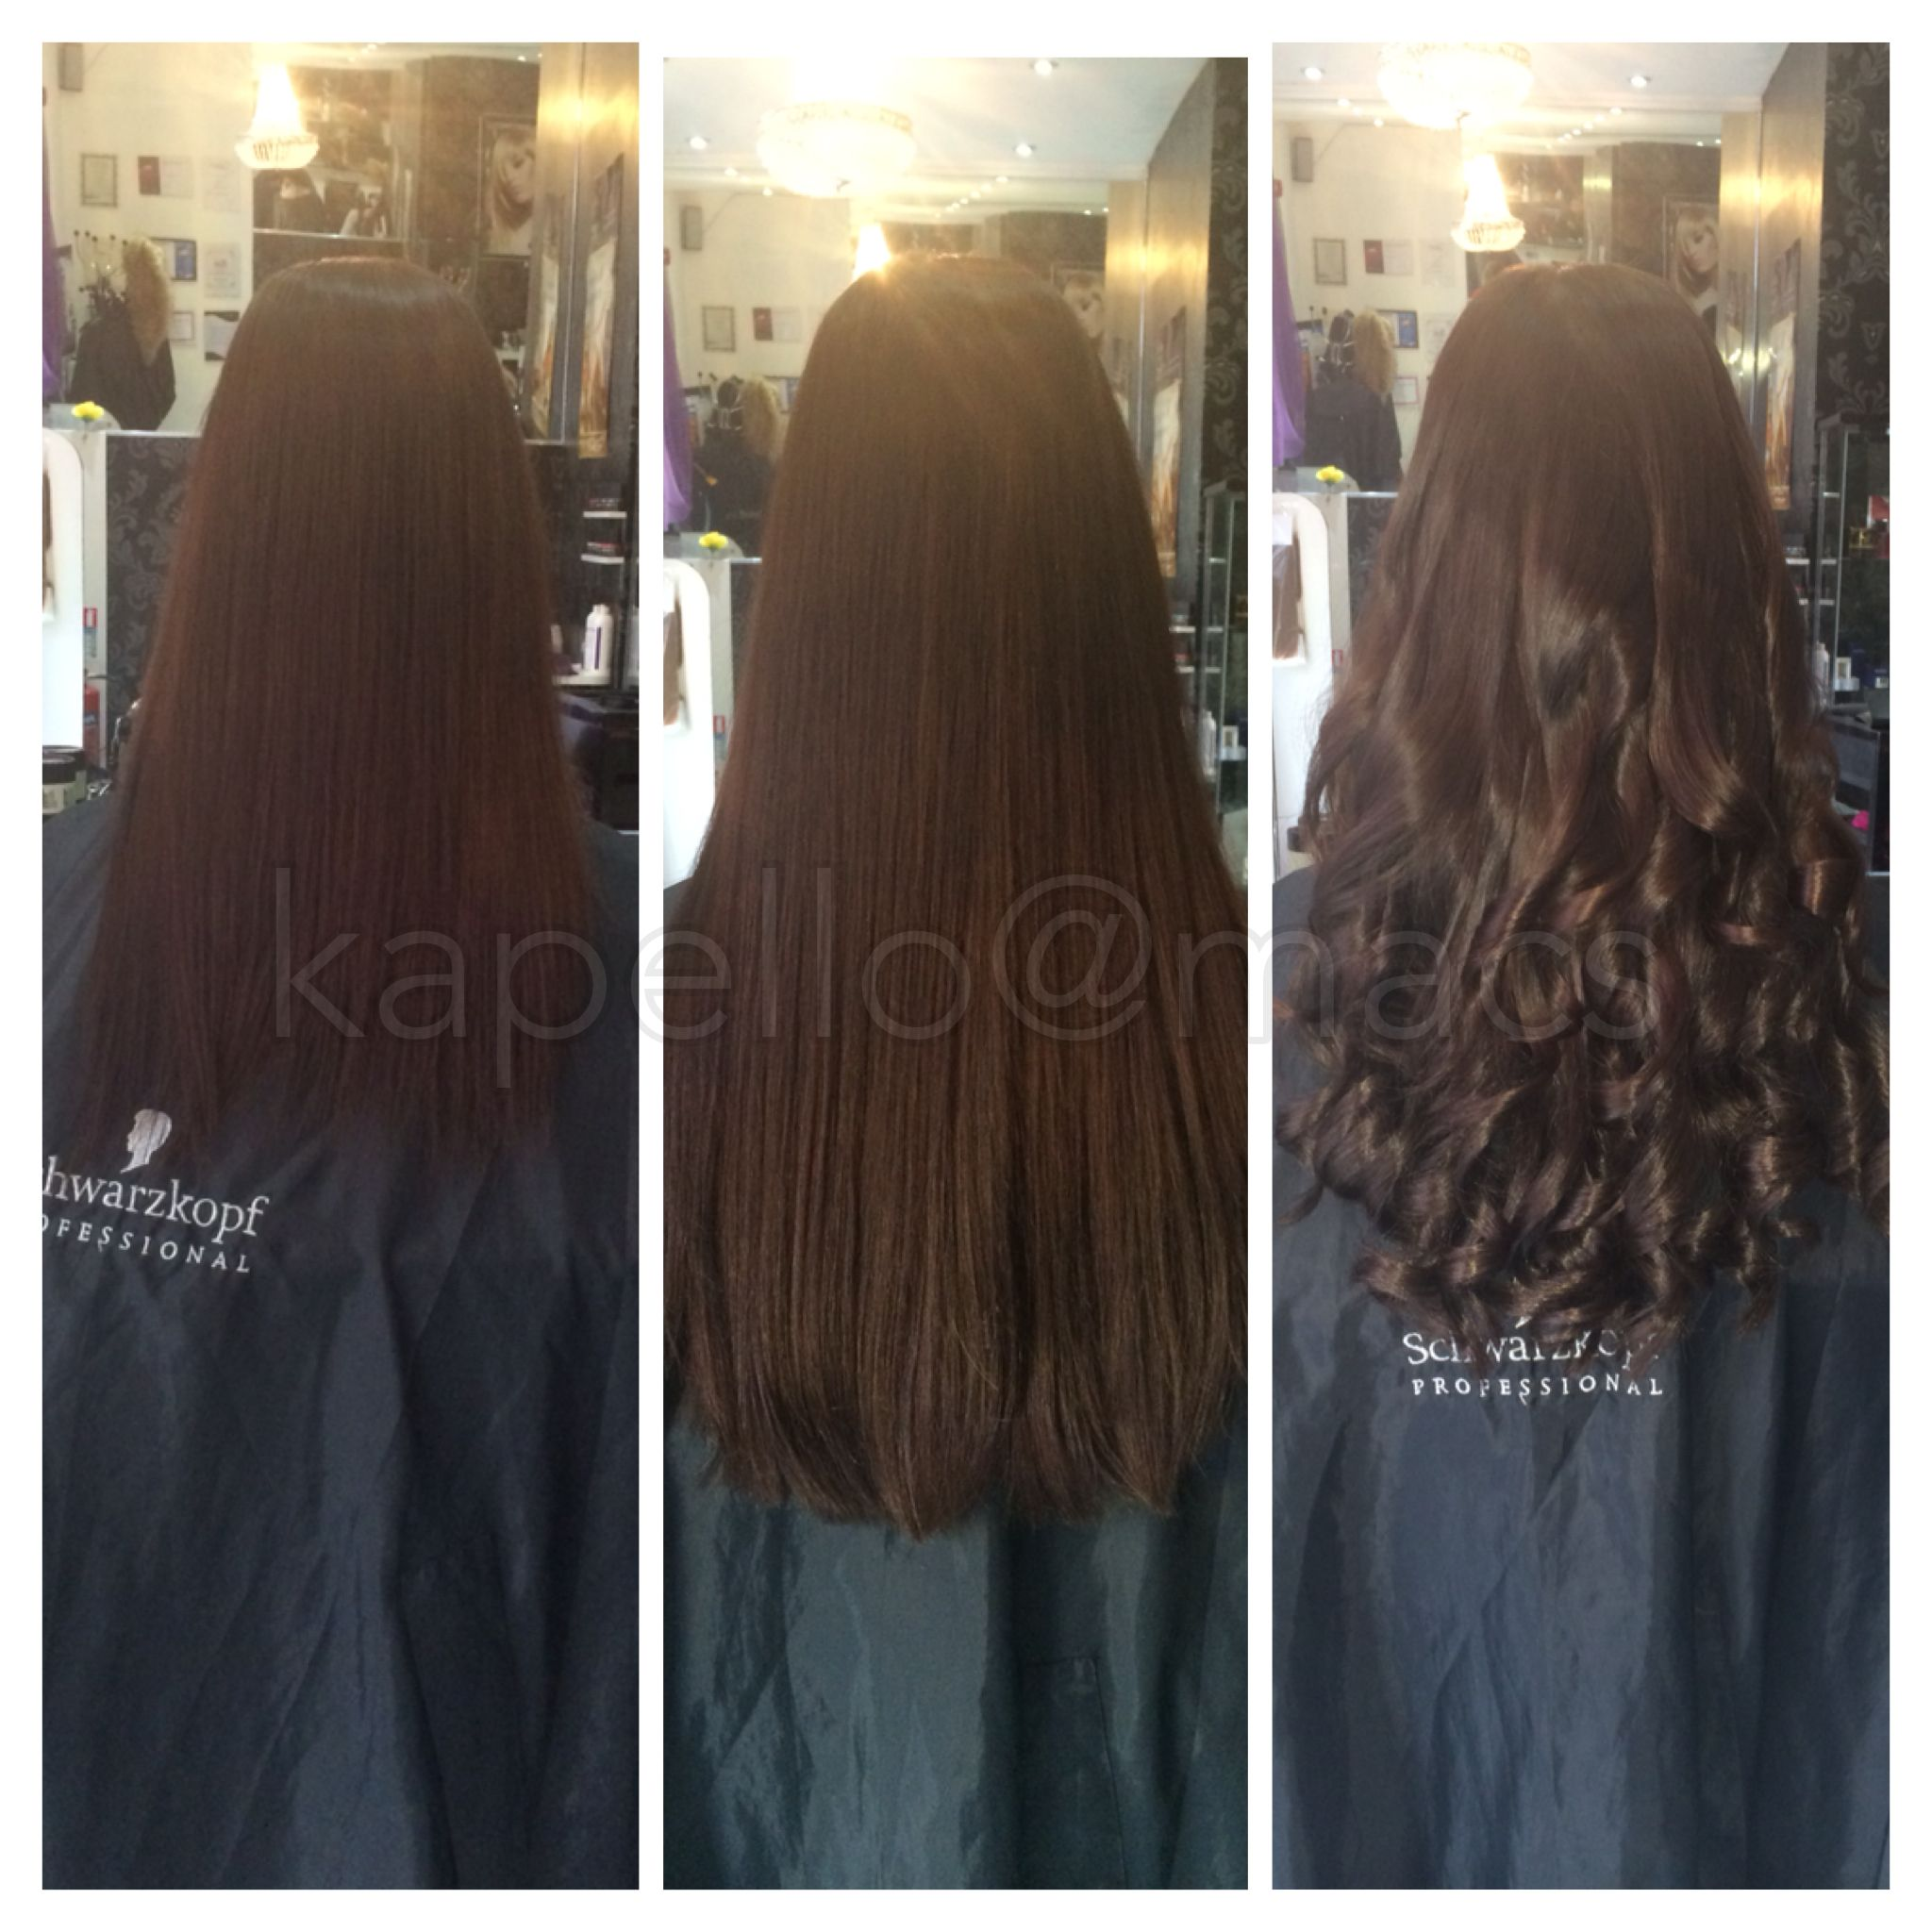 Kapellp Extensions At Macs Glasgow Hair Beauty Macs Glasgow Hair